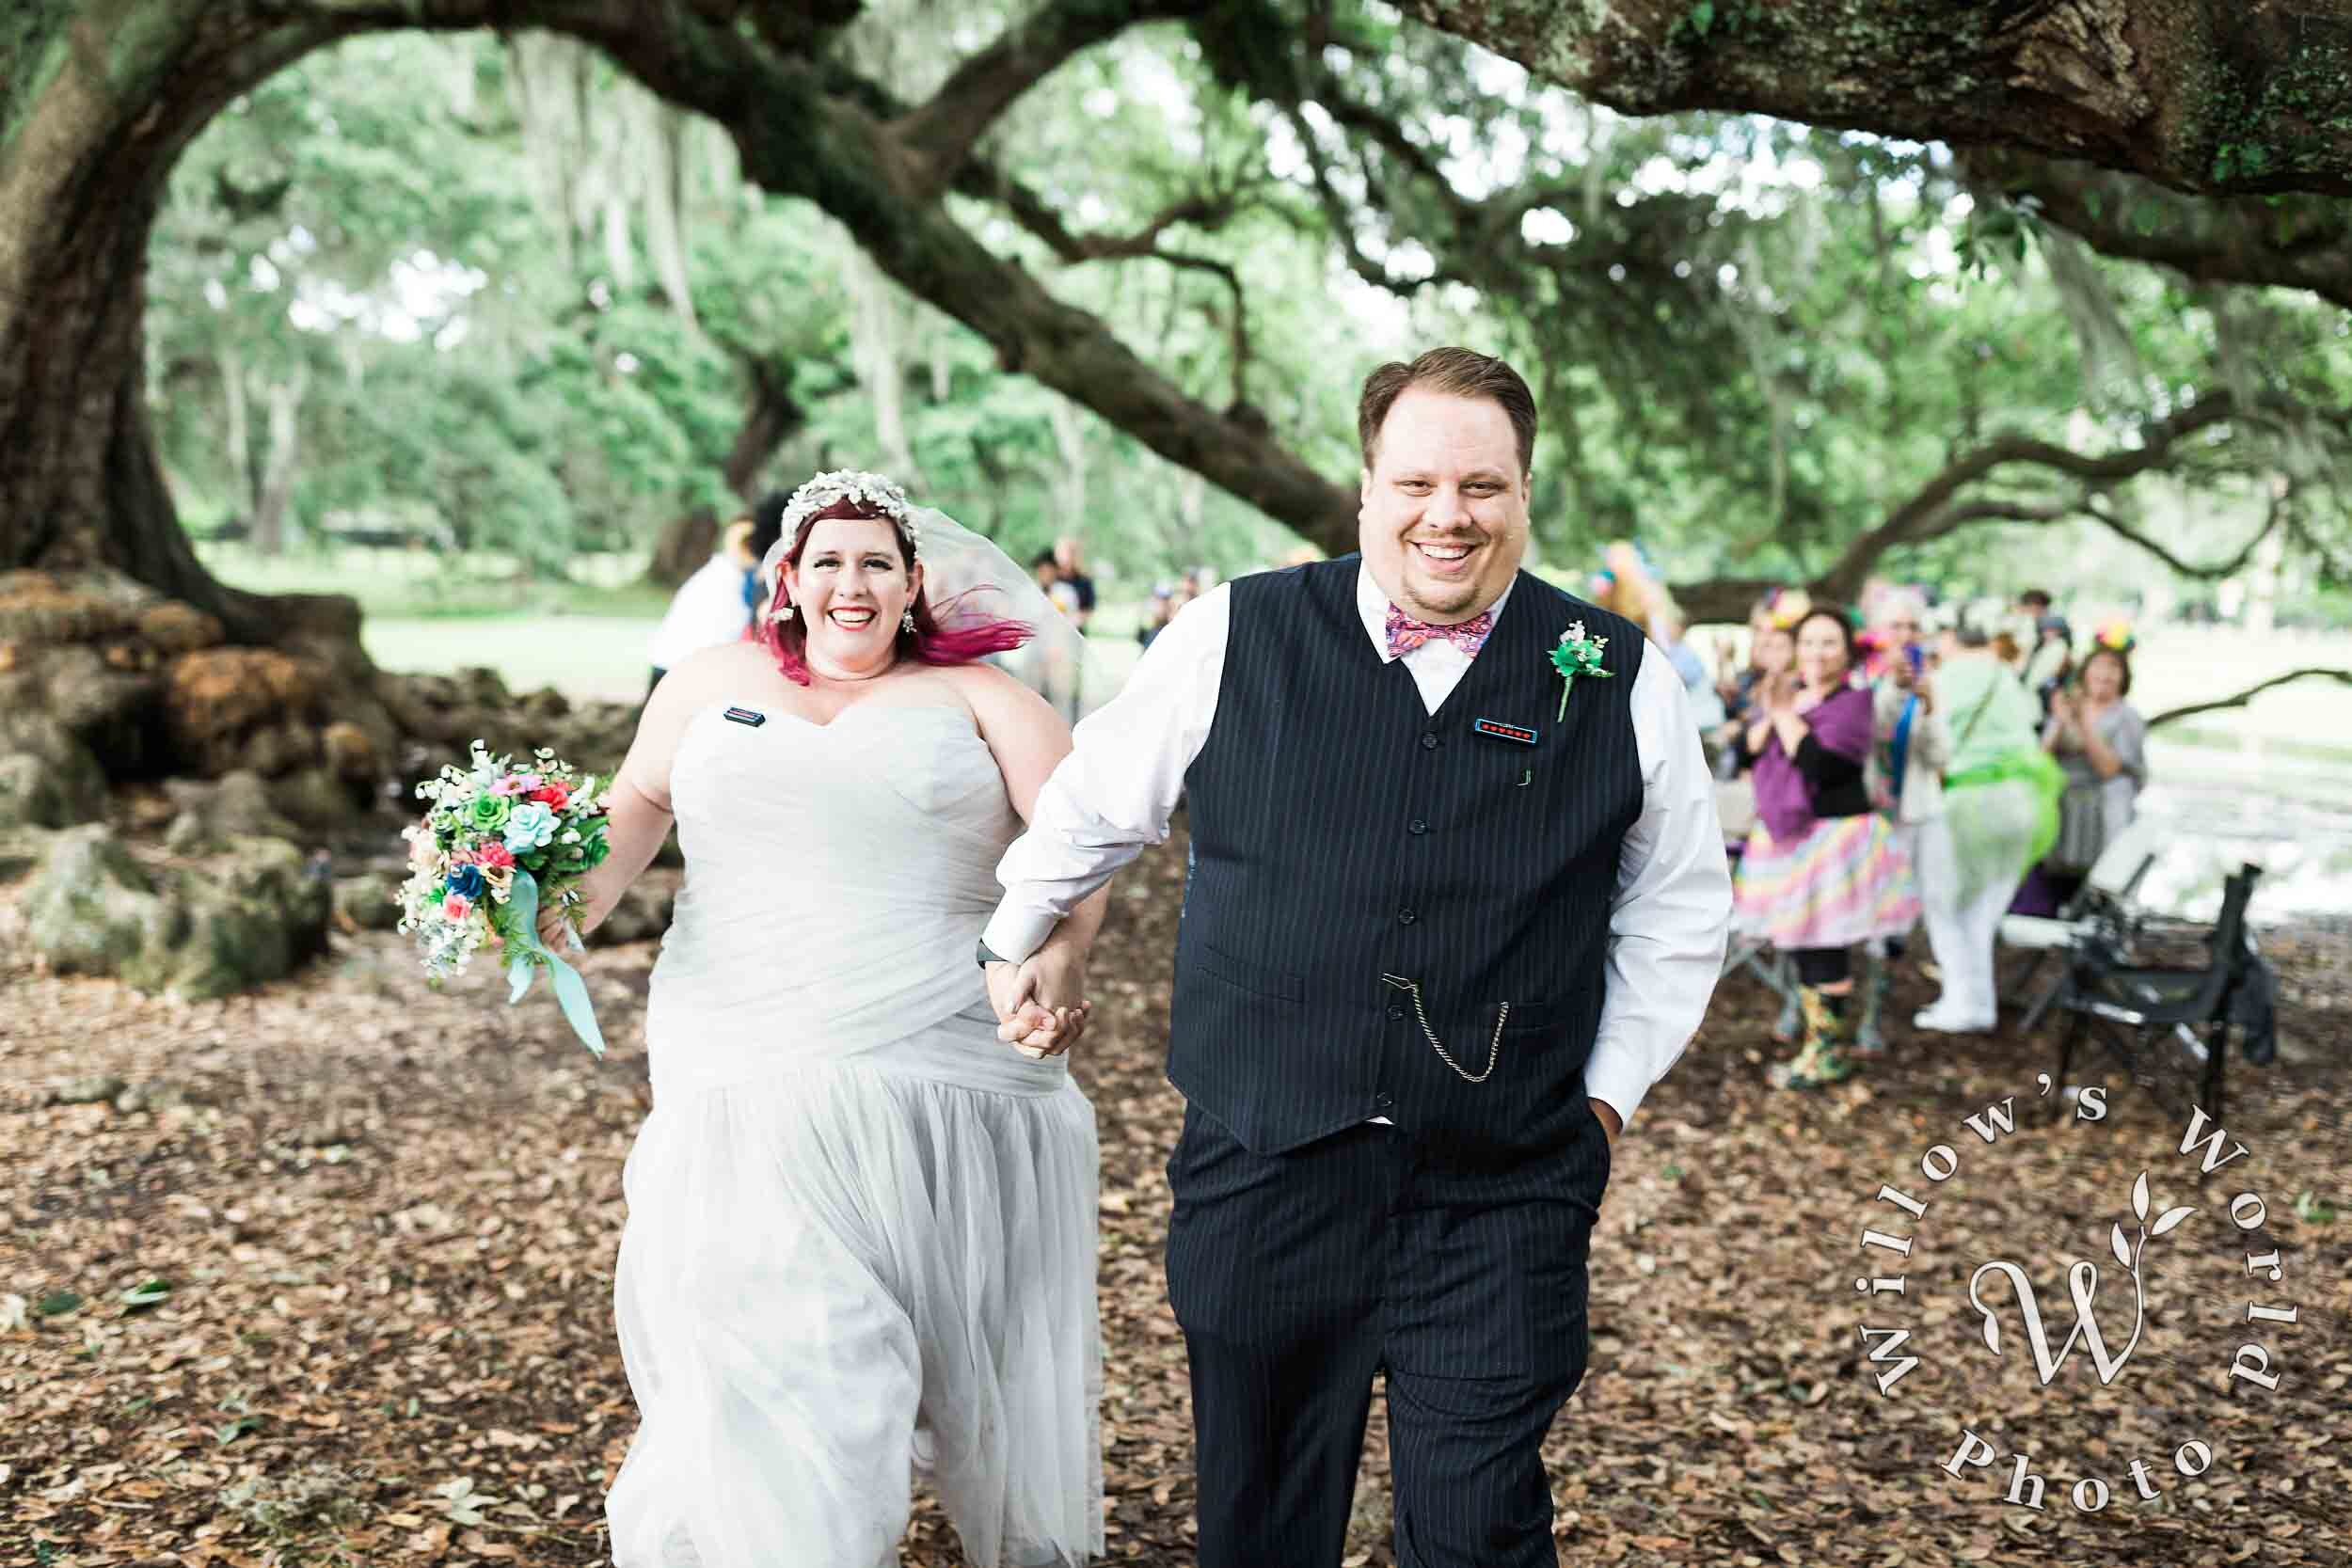 42-Tree-of-Life-Audubon-Park-New-Orleans-Outdoor-Cosplay-Wedding-Ceremony-Willows-World-Photo.jpg